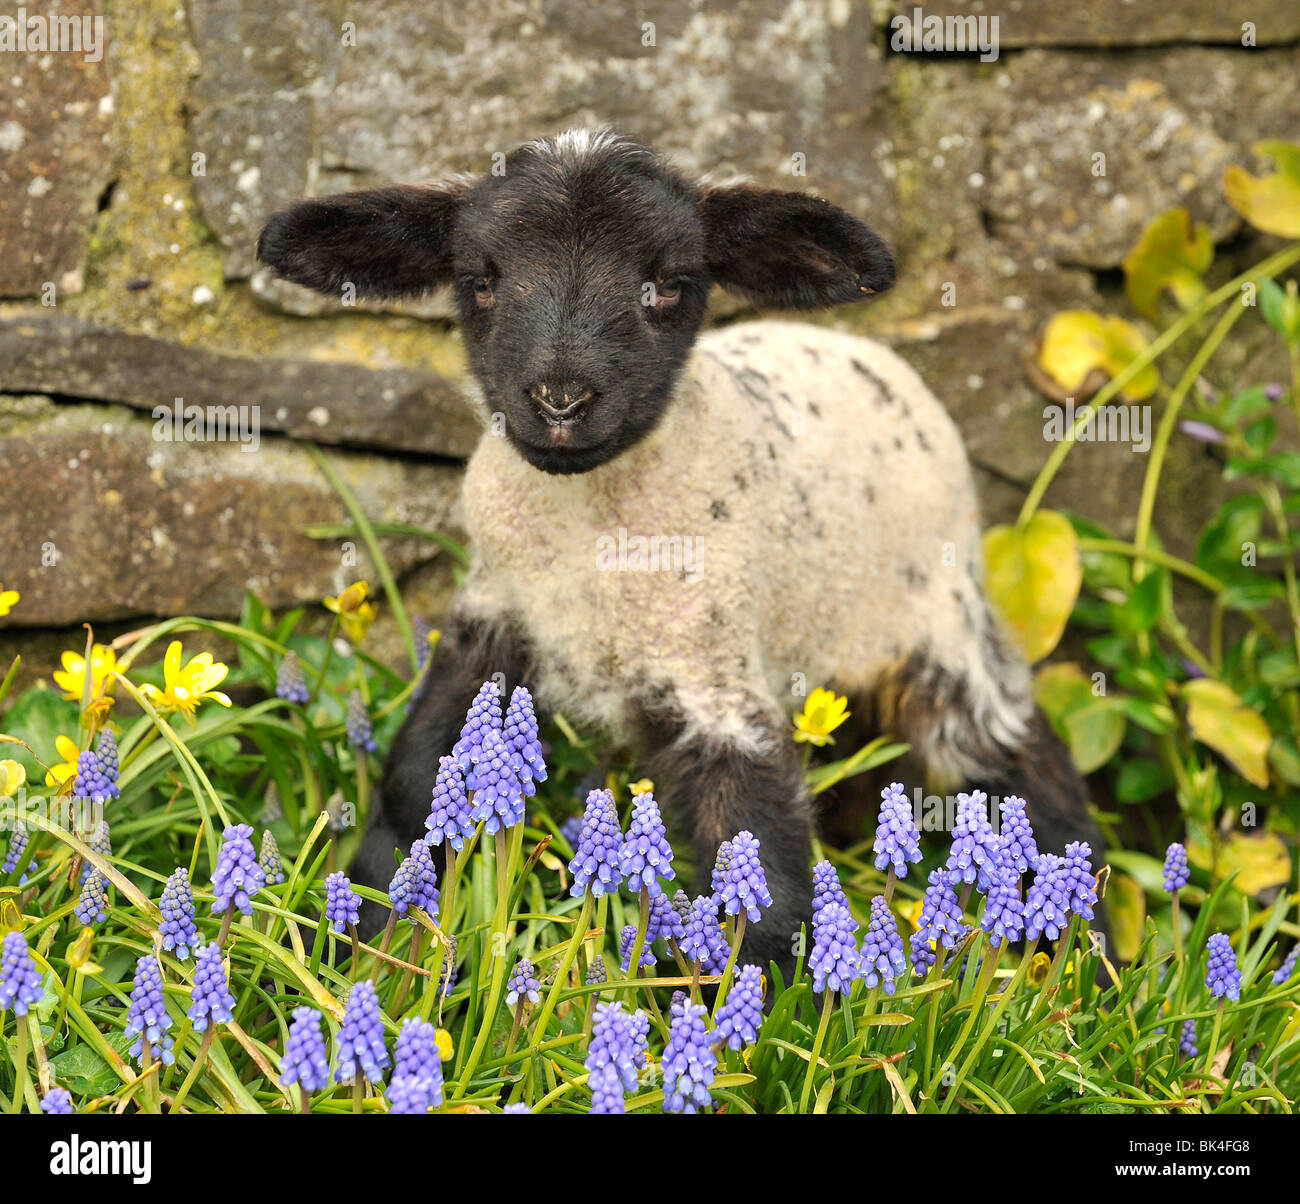 Spring uk lamb flowers stock photos spring uk lamb flowers stock lamb in spring flowers uk stock image mightylinksfo